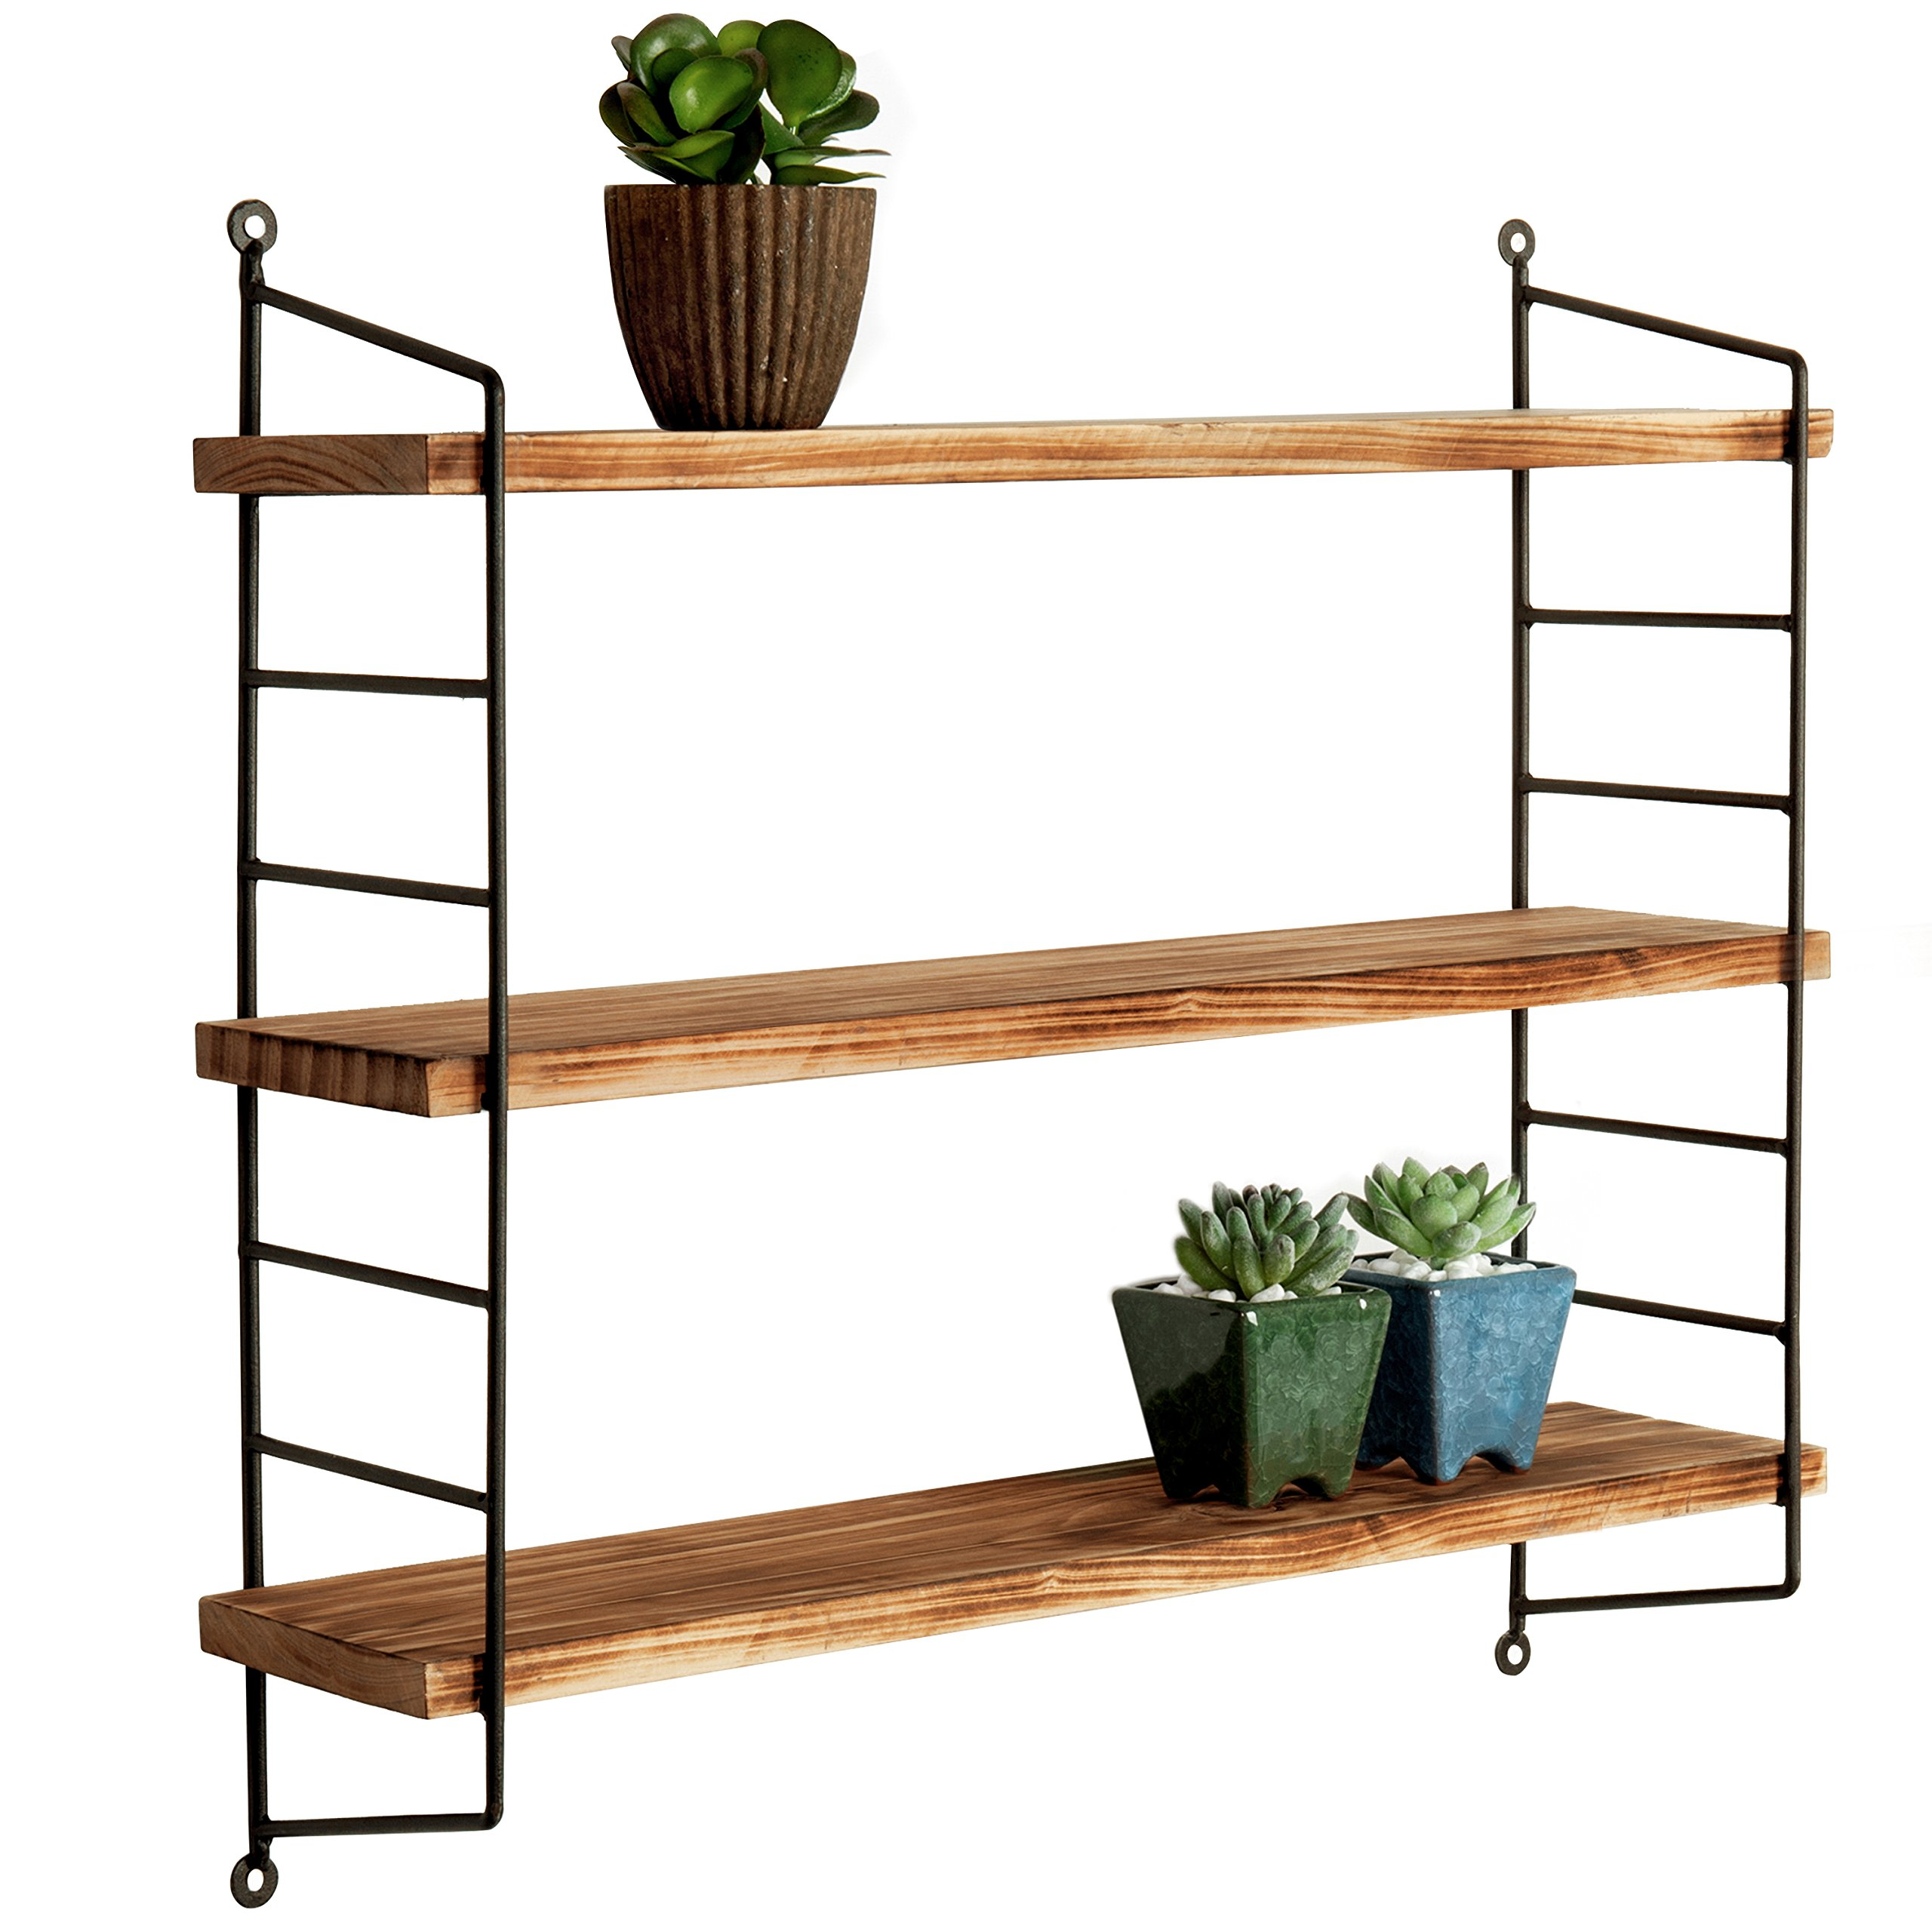 MyGift Modern Industrial Metal & Torched Wood Adjustable Wall Mounted 3-Tier Shelf by MyGift